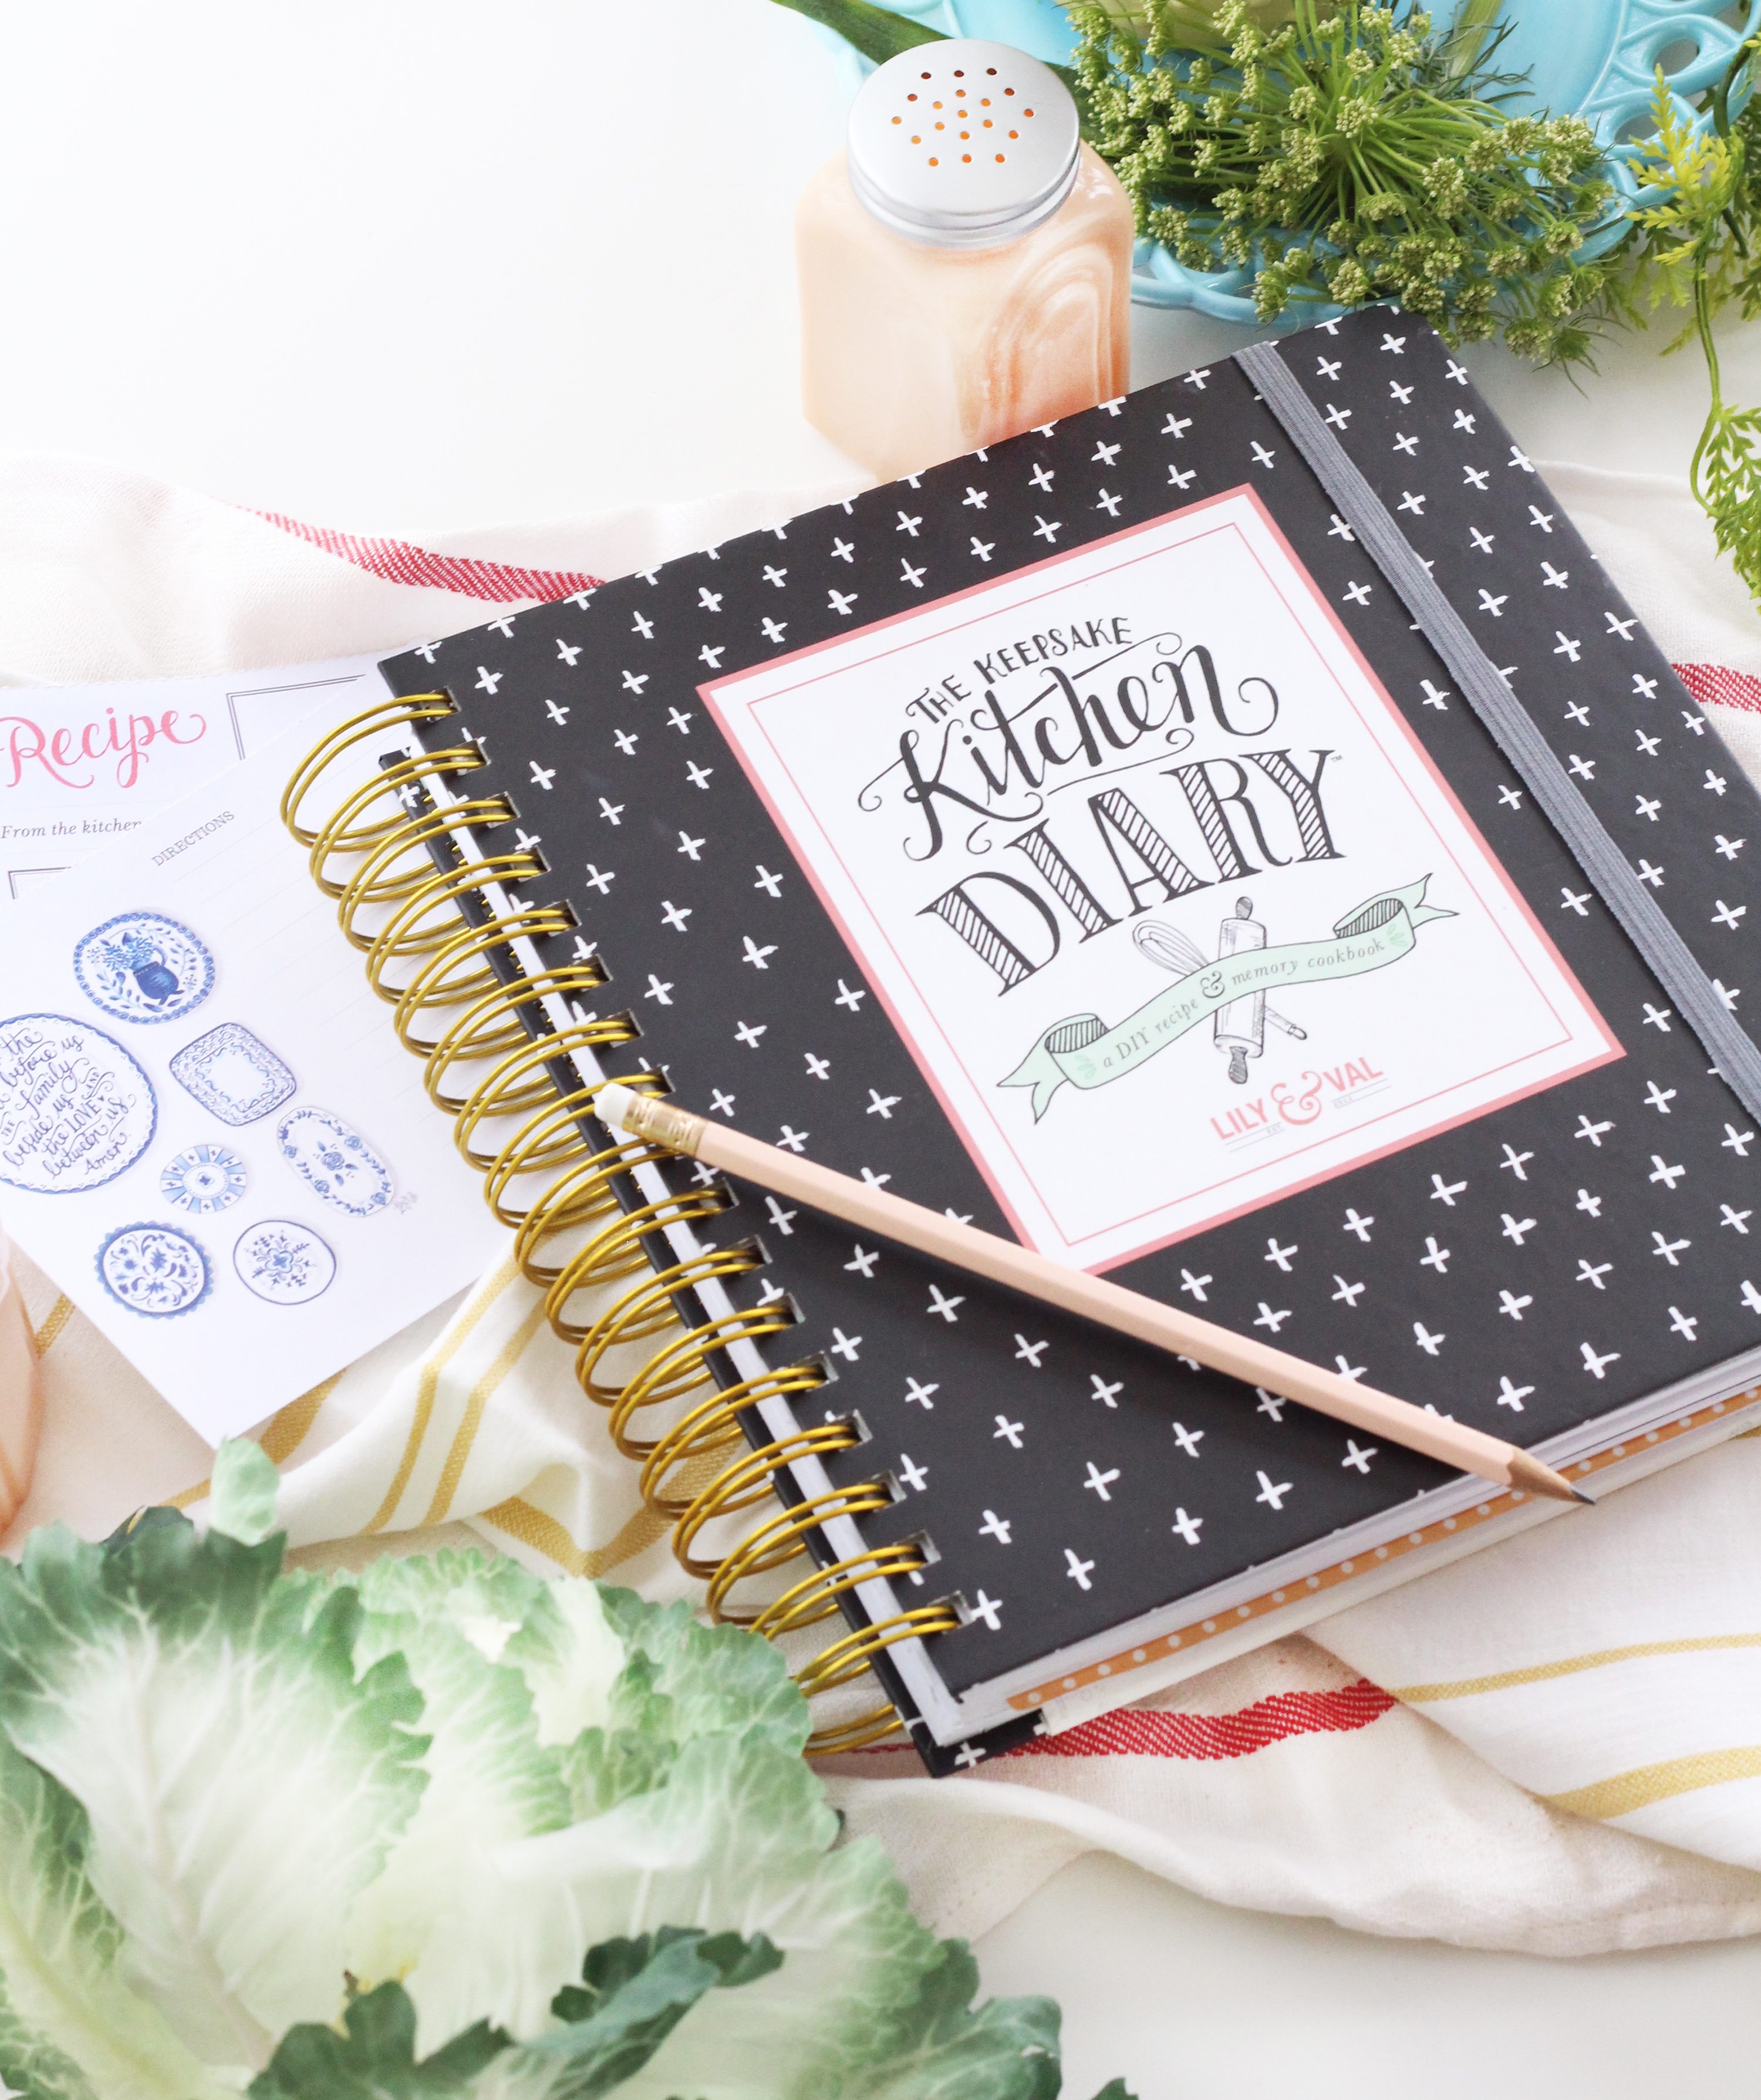 The Keepsake Kitchen Diary by Lily & Val: A family cookbook & memory keeper